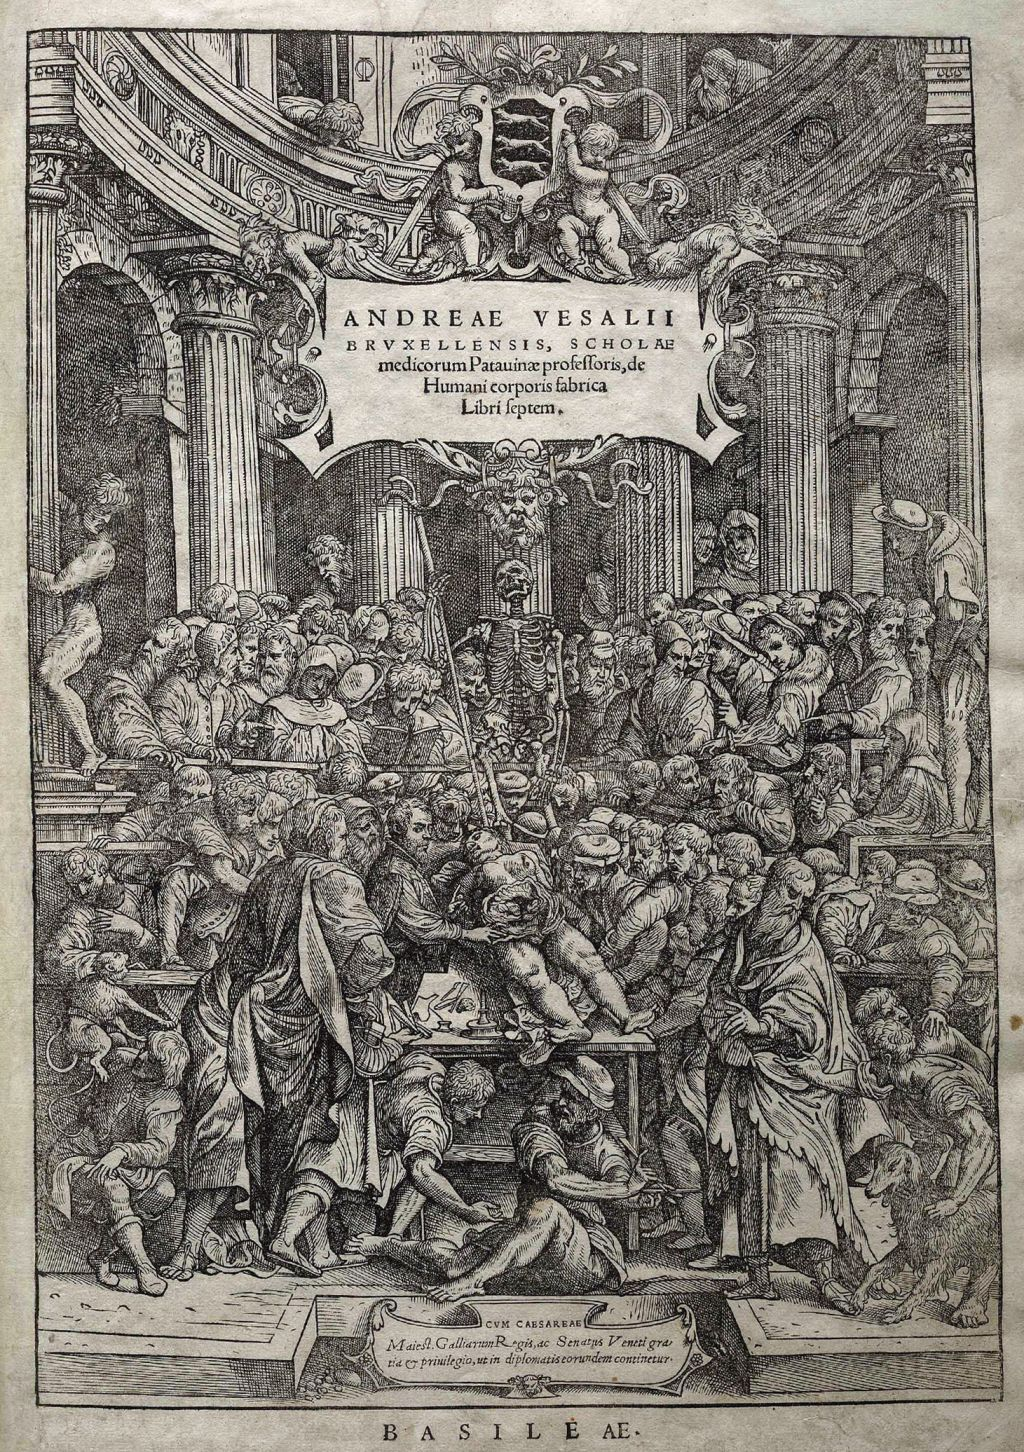 Andreas Vesalius - Father of Modern Anatomy - WriteWork